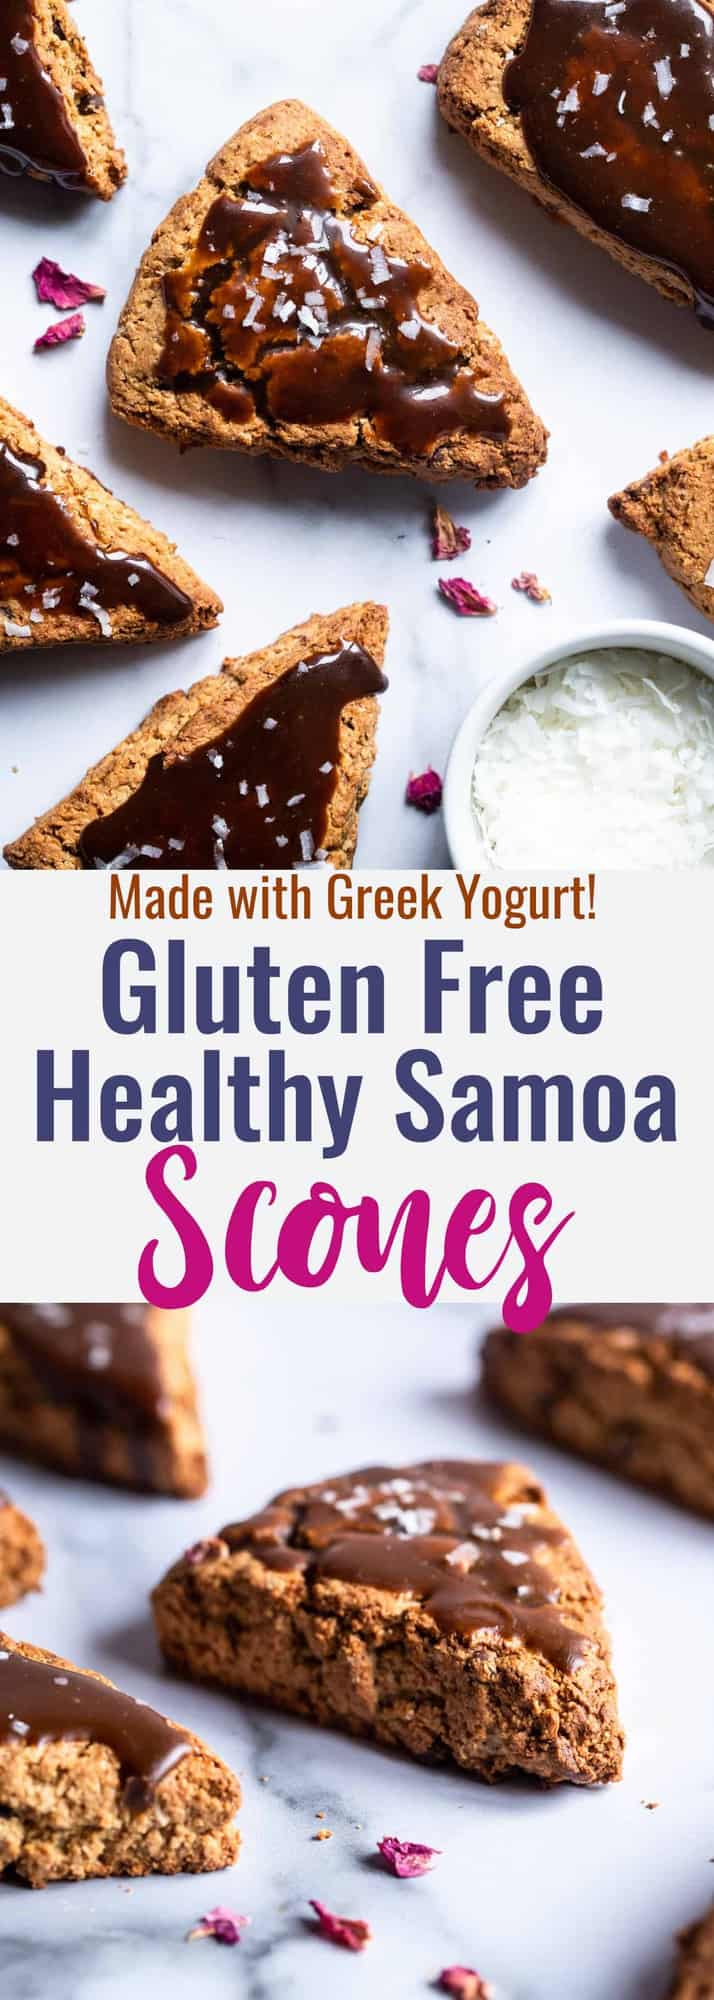 Healthy Gluten Free Samoa Scones with Greek Yogurt -These Healthy Gluten Free Sconesare an easy, better for you breakfast that tastes like a scone and a Samoa cookie had a baby! Dairy free option included! | #Foodfaithfitness | #Glutenfree #Dairyfree #Healthy #Scones #Breakfast